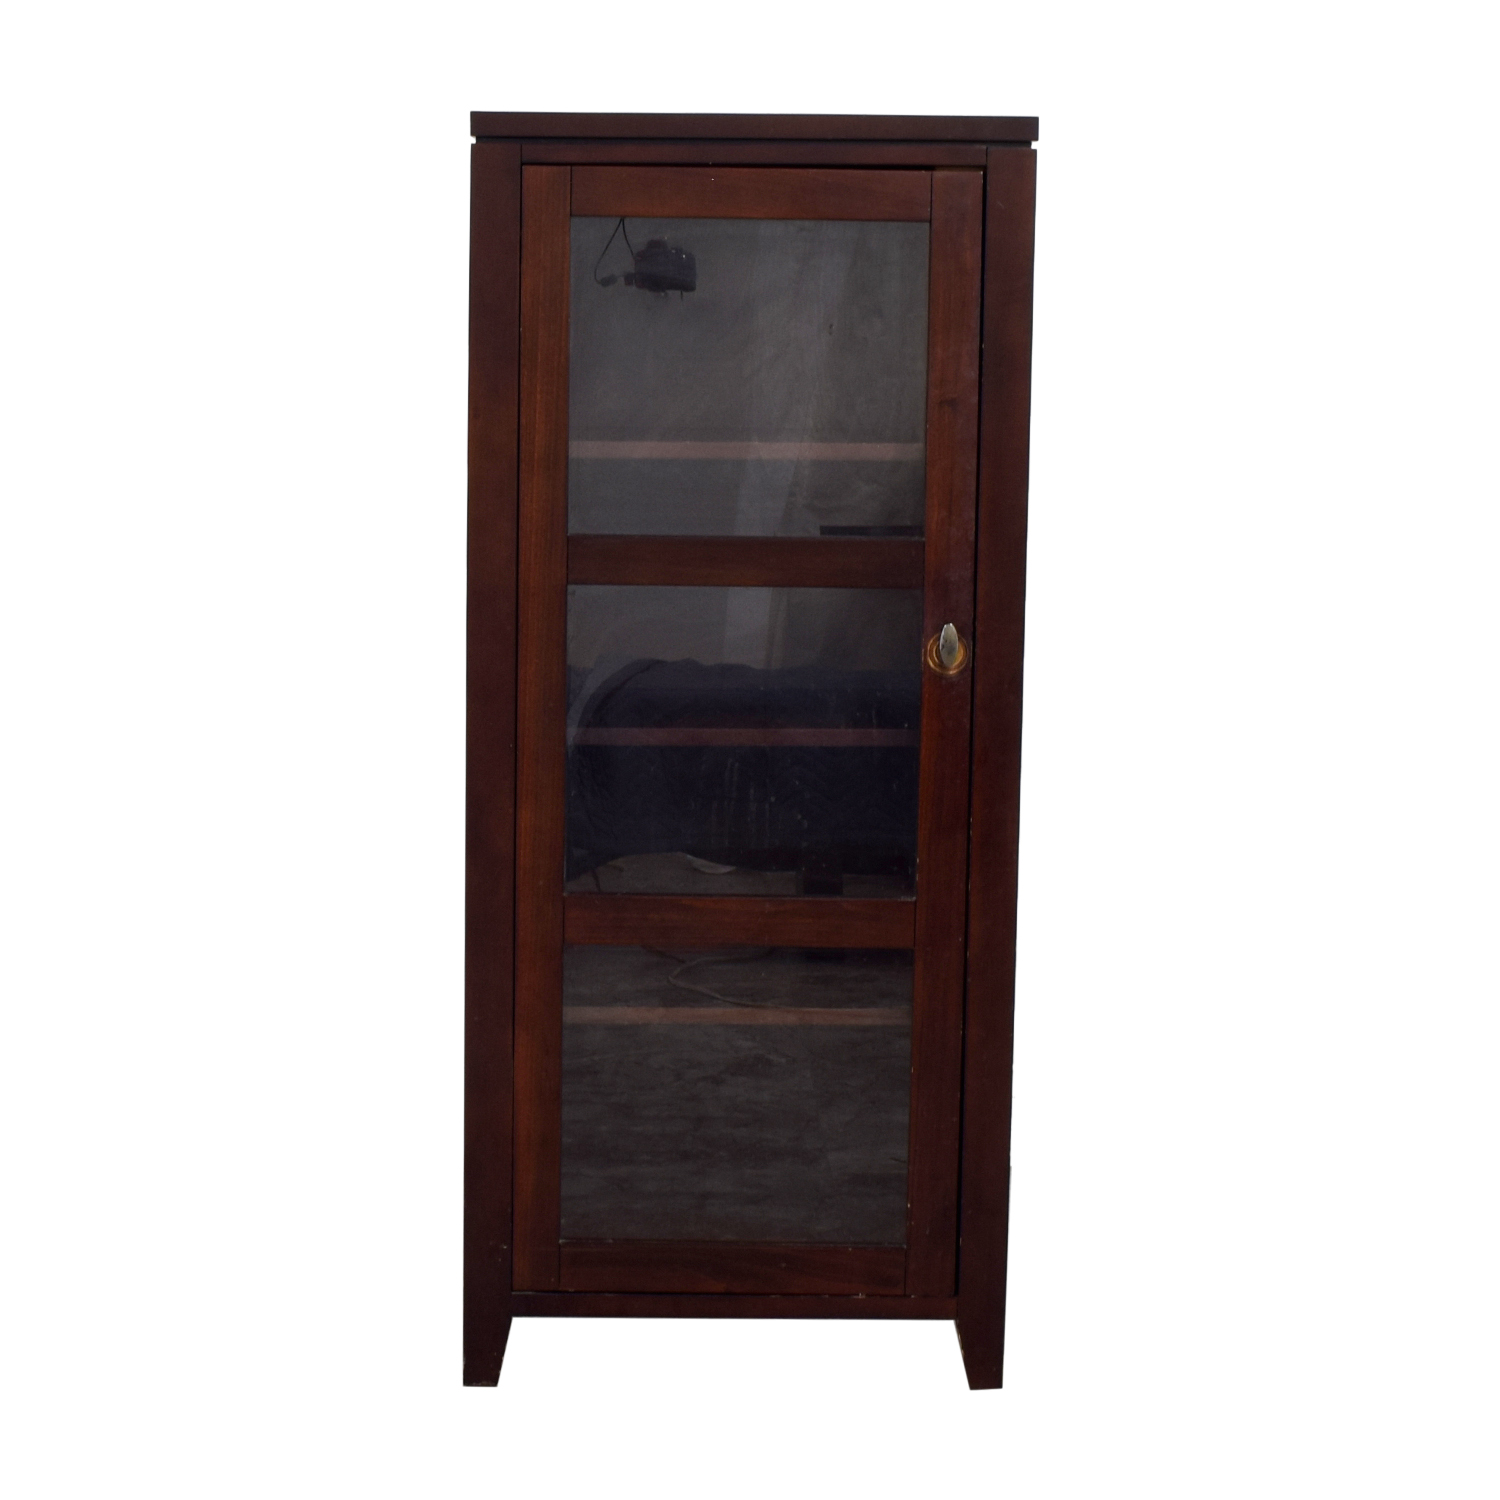 Crate & Barrel Crate & Barrel Bar Cabinet with Glass Door used